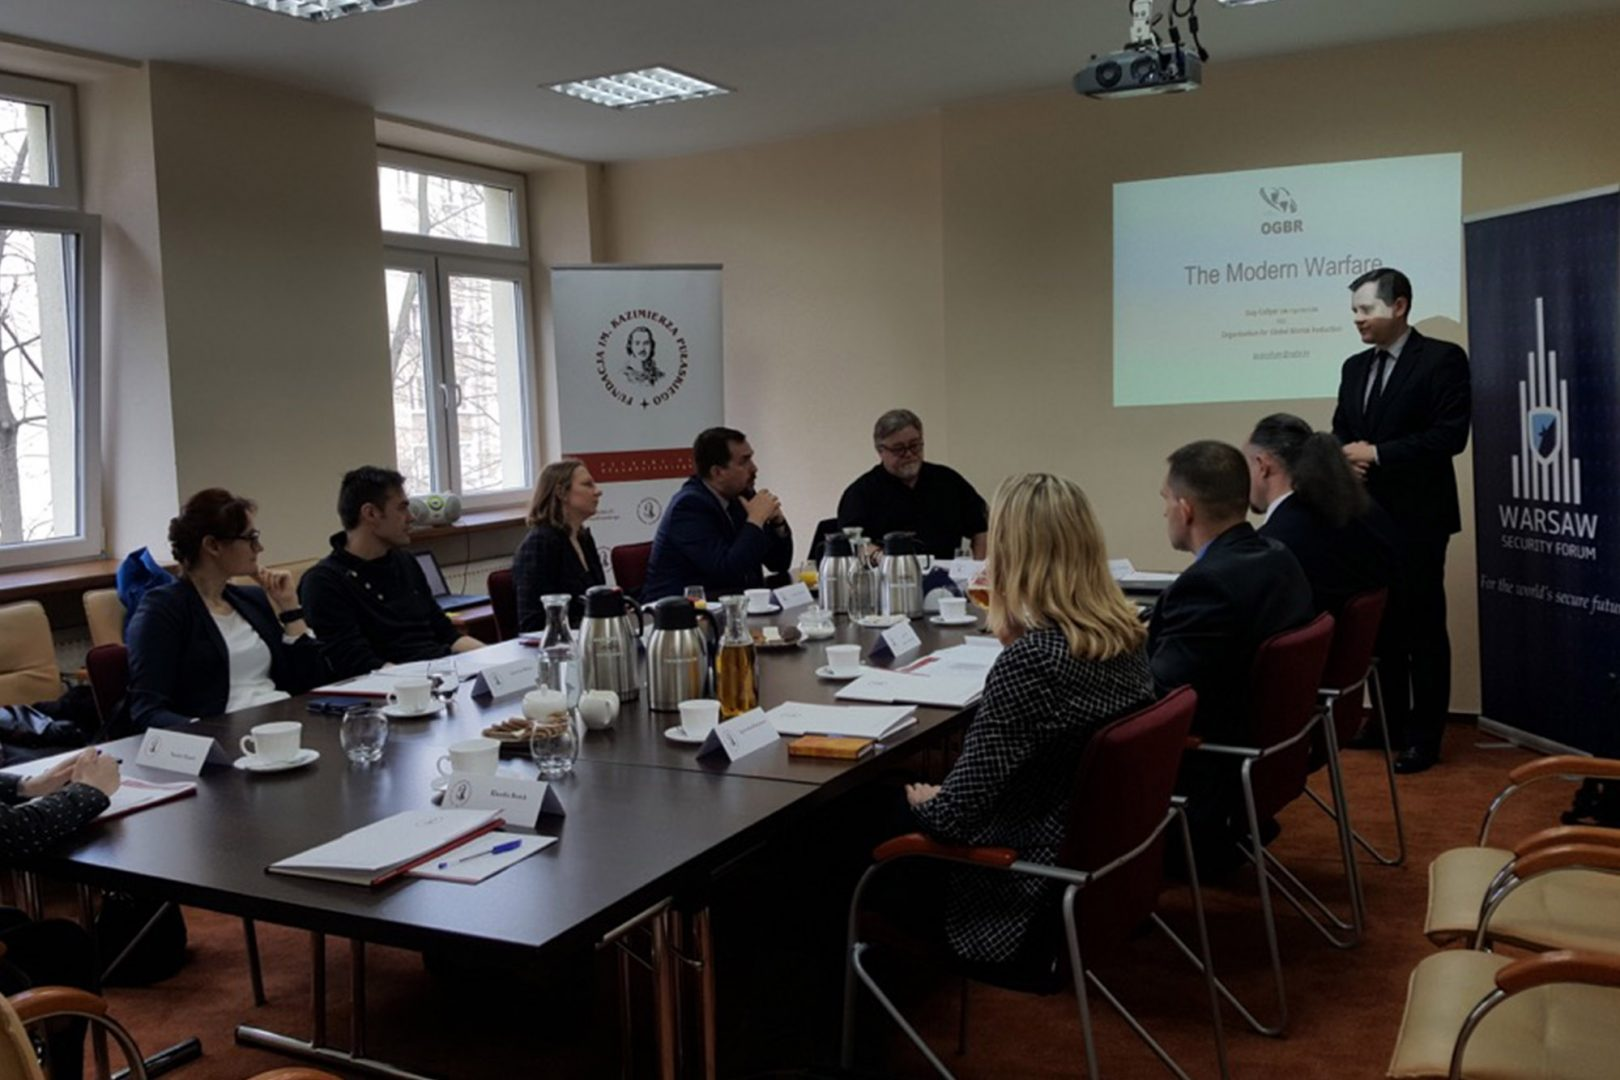 Foreign fighters and threat of using weapons of mass destruction by terrorists: the main points of discussion with Guy Collyer